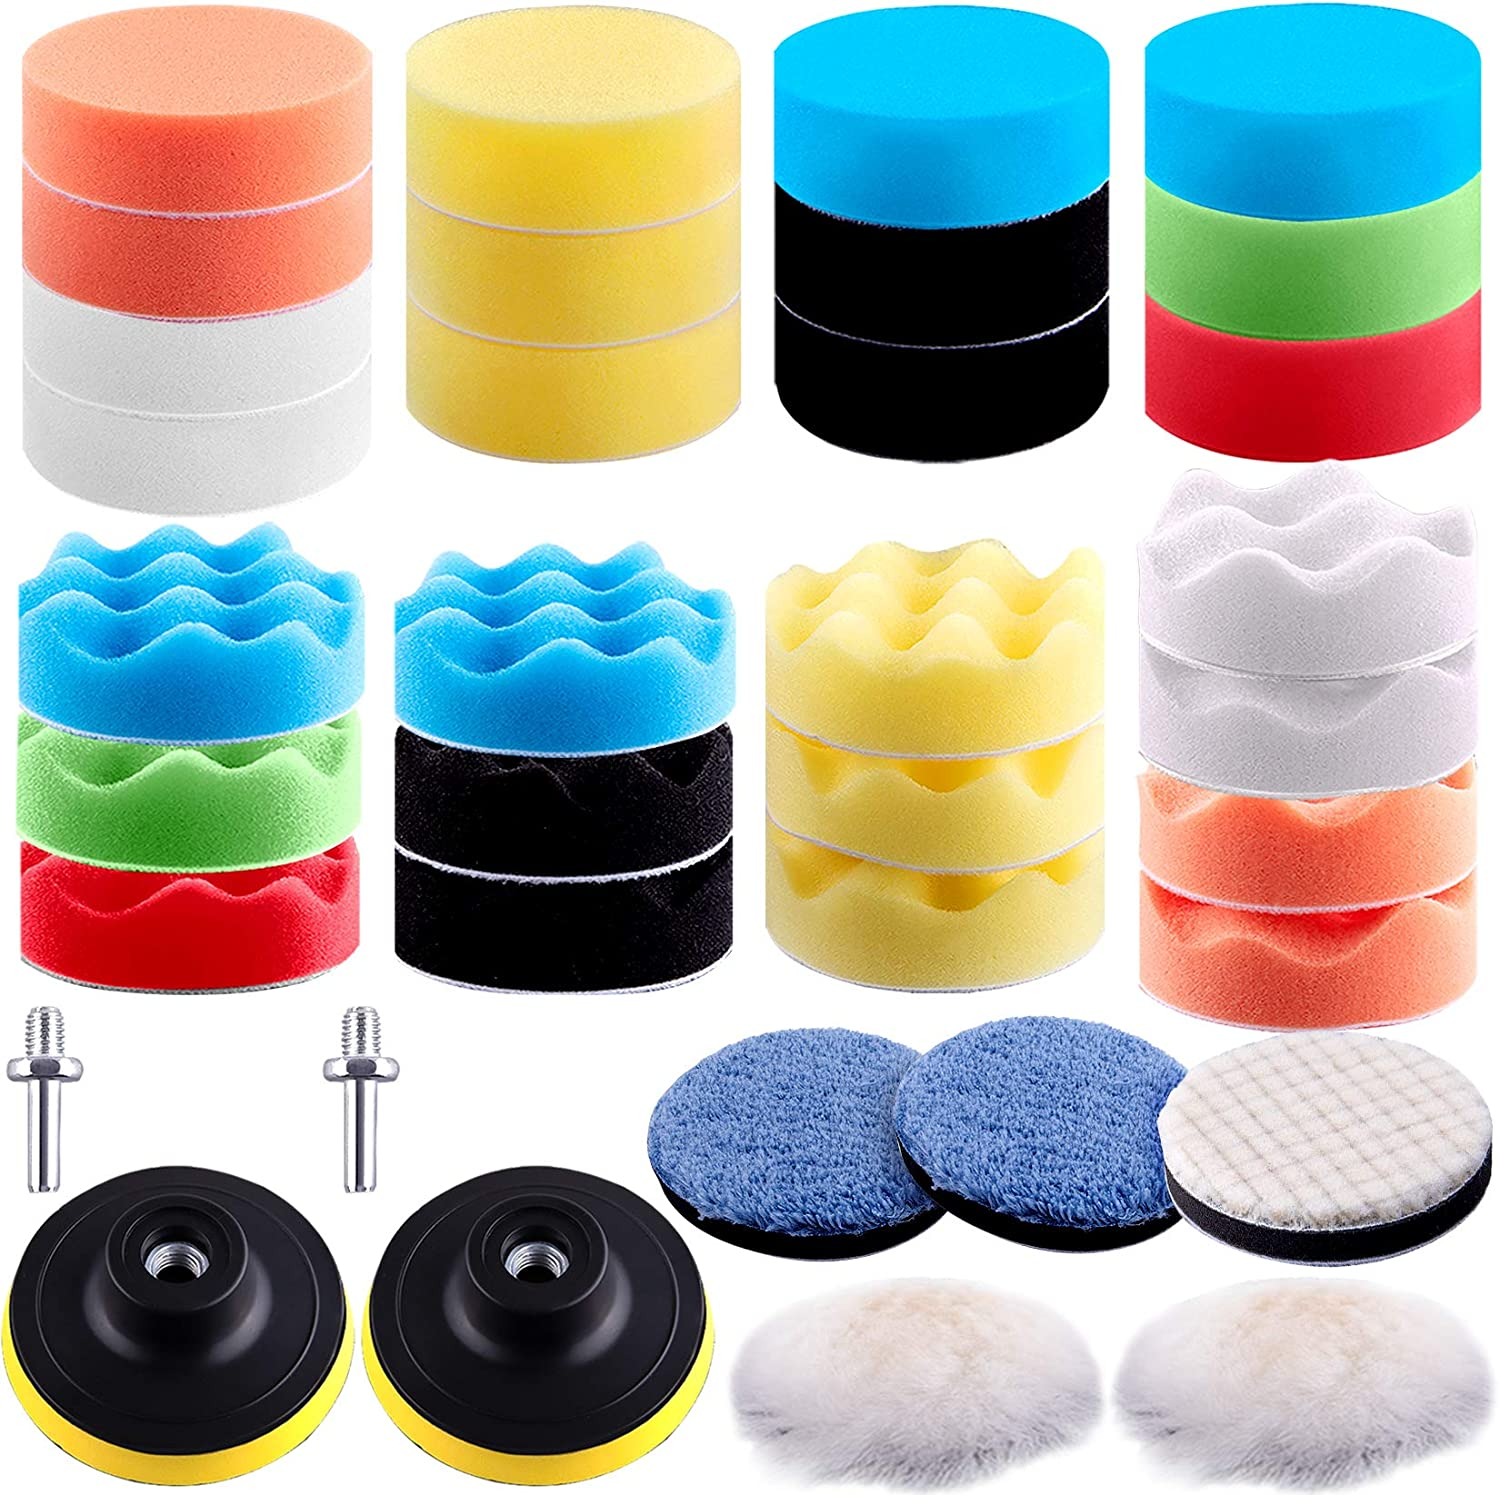 SIQUK 35 Pieces Car Polishing Pad Kit 3 Inch Buffing Pads Foam Polish Pads Polisher Attachment for Drill